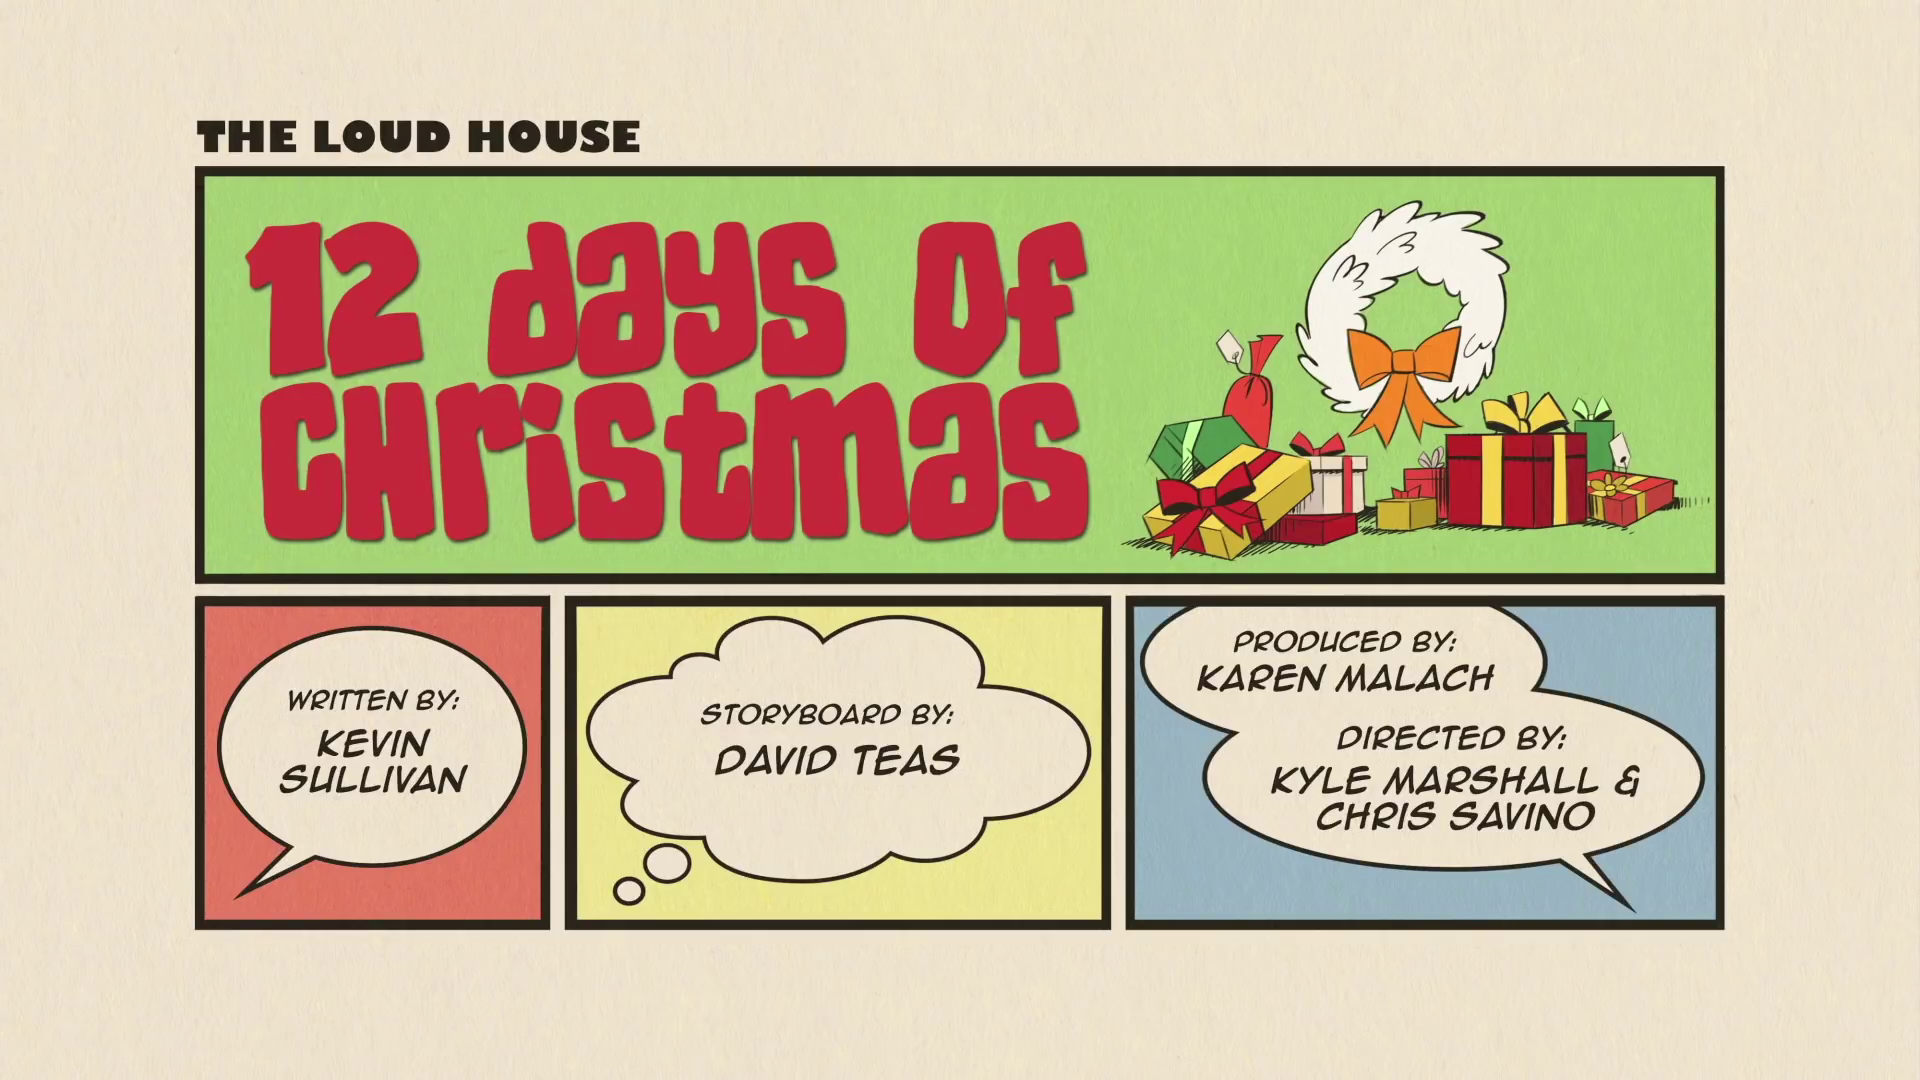 12 Days Of Christmas.12 Days Of Christmas The Loud House Encyclopedia Fandom